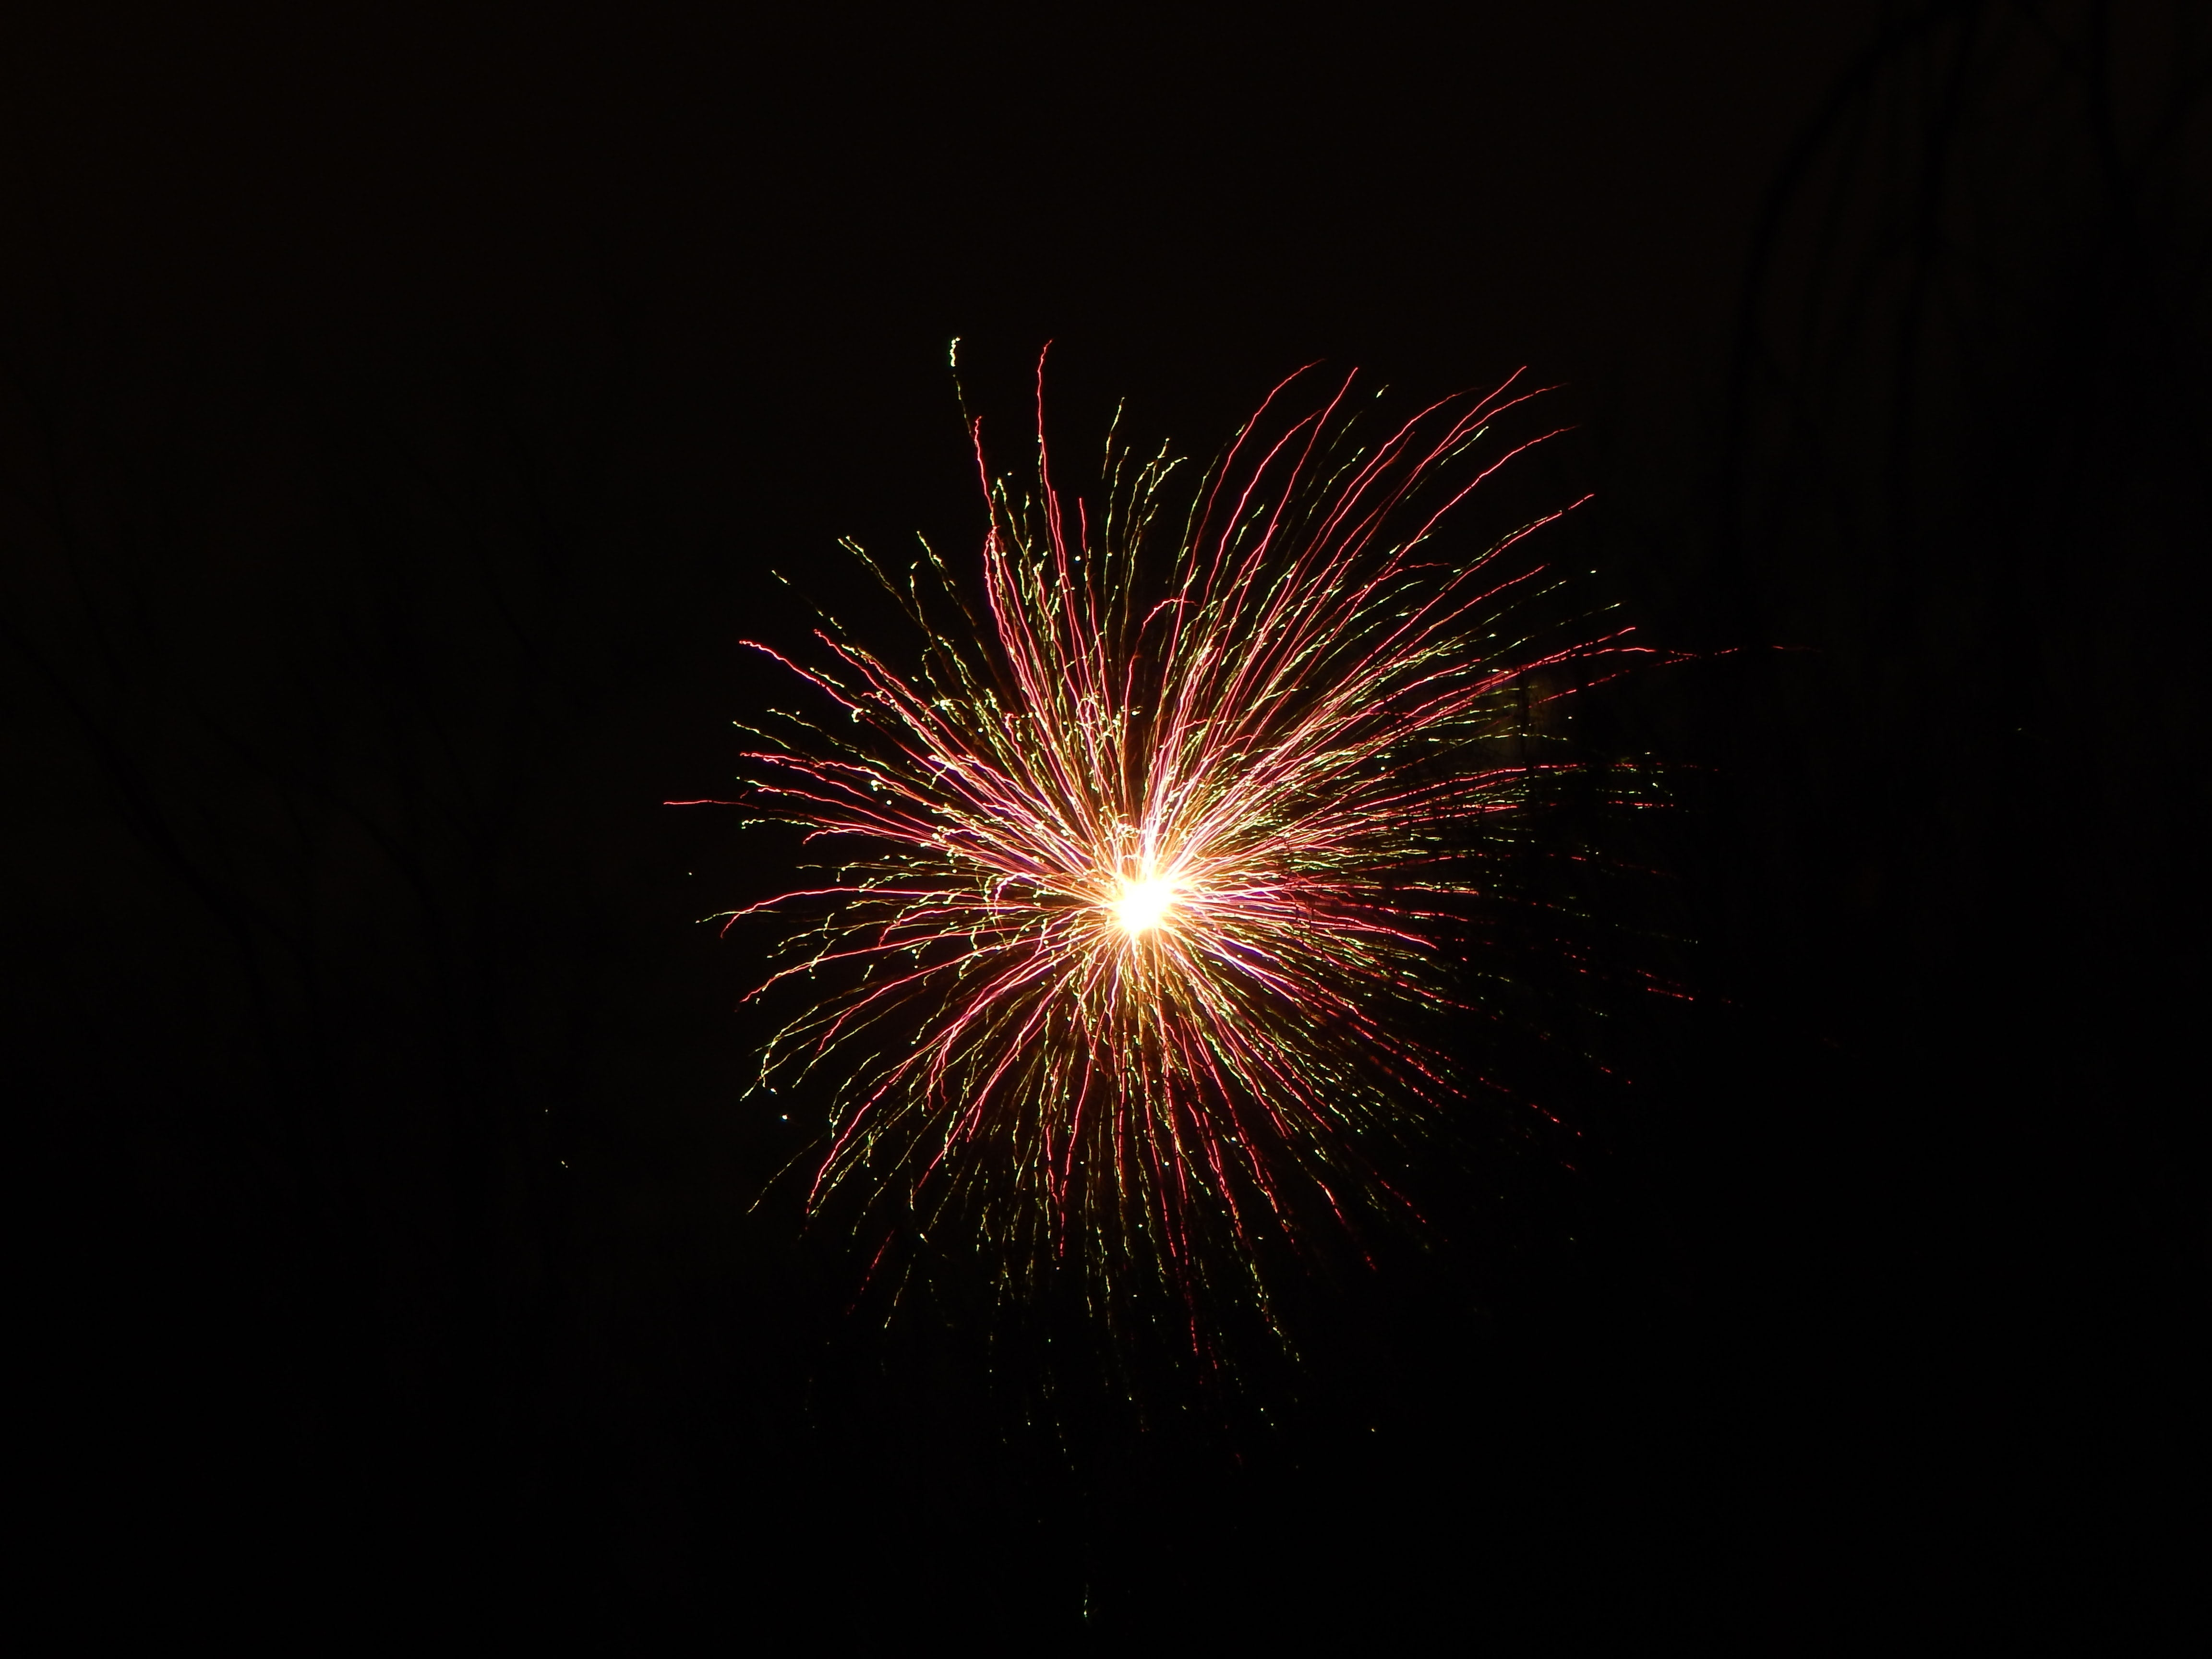 red fireworks during nighttime